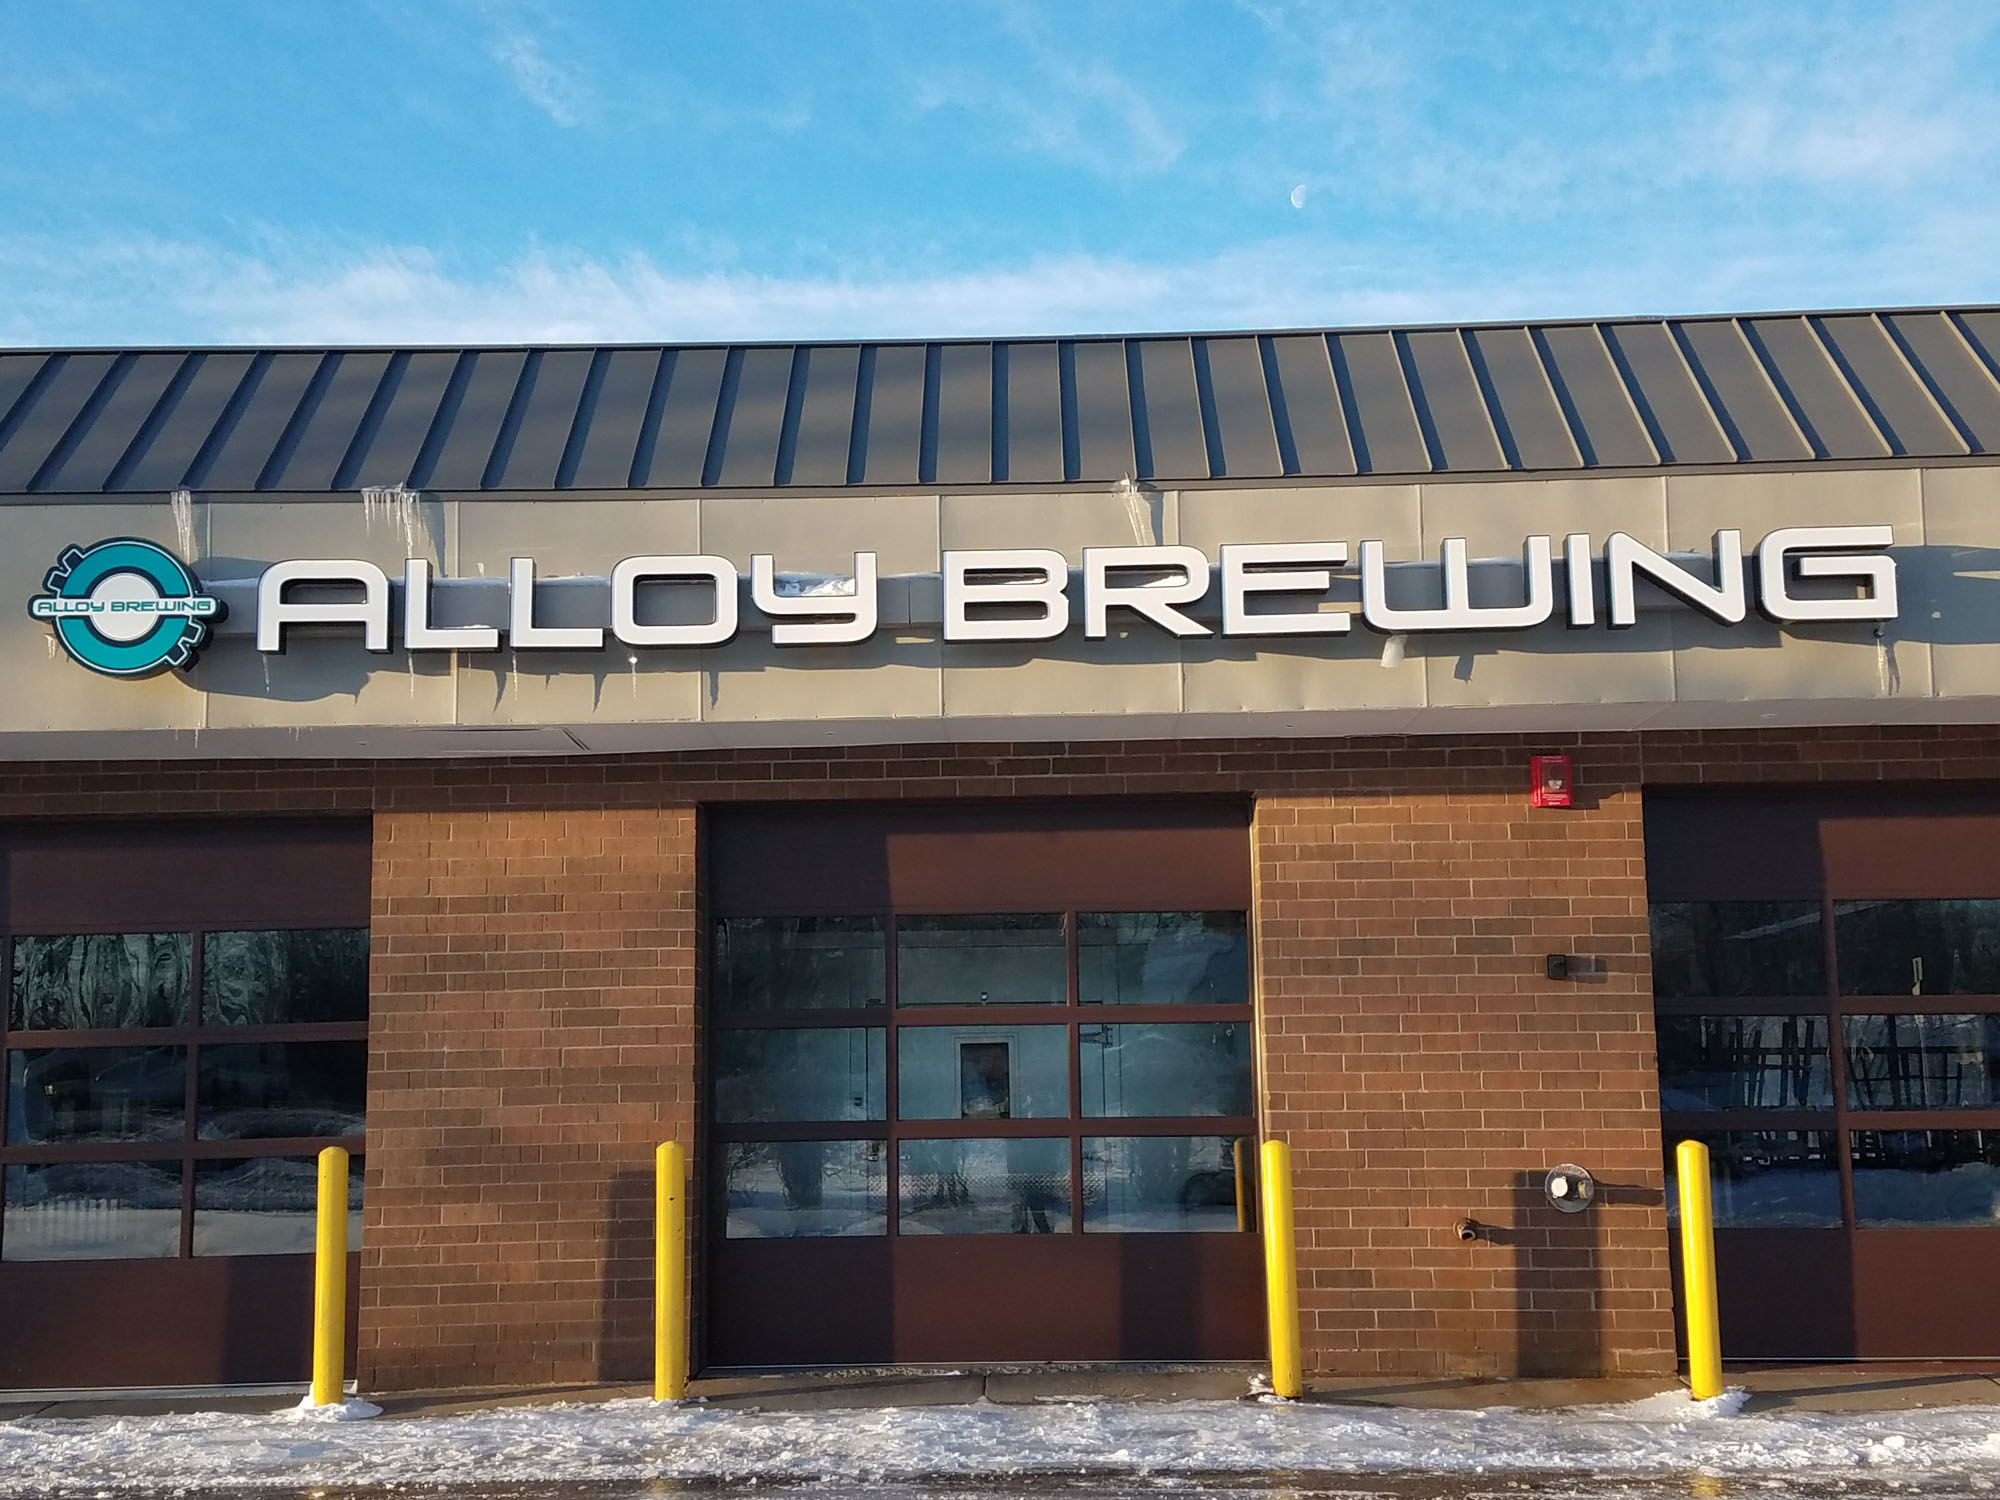 Alloy Brewing Coon Rapids, Minnesota LED illuminated channel letters Mounted to raceway